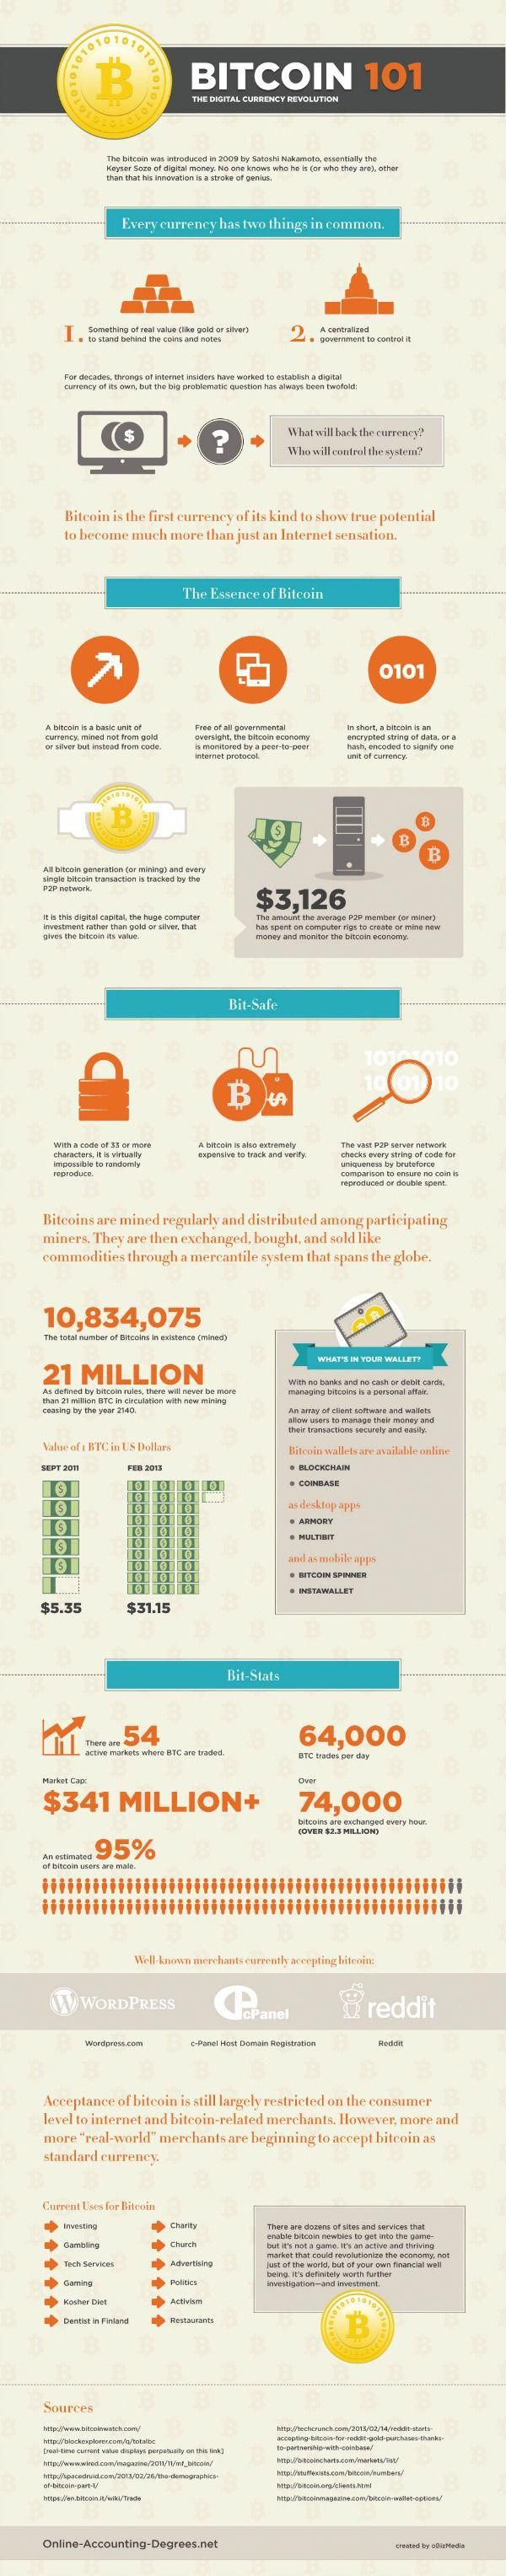 Trading infographic : Bitcoin 101 infographic- I still don't really understand #whatisbitcoin